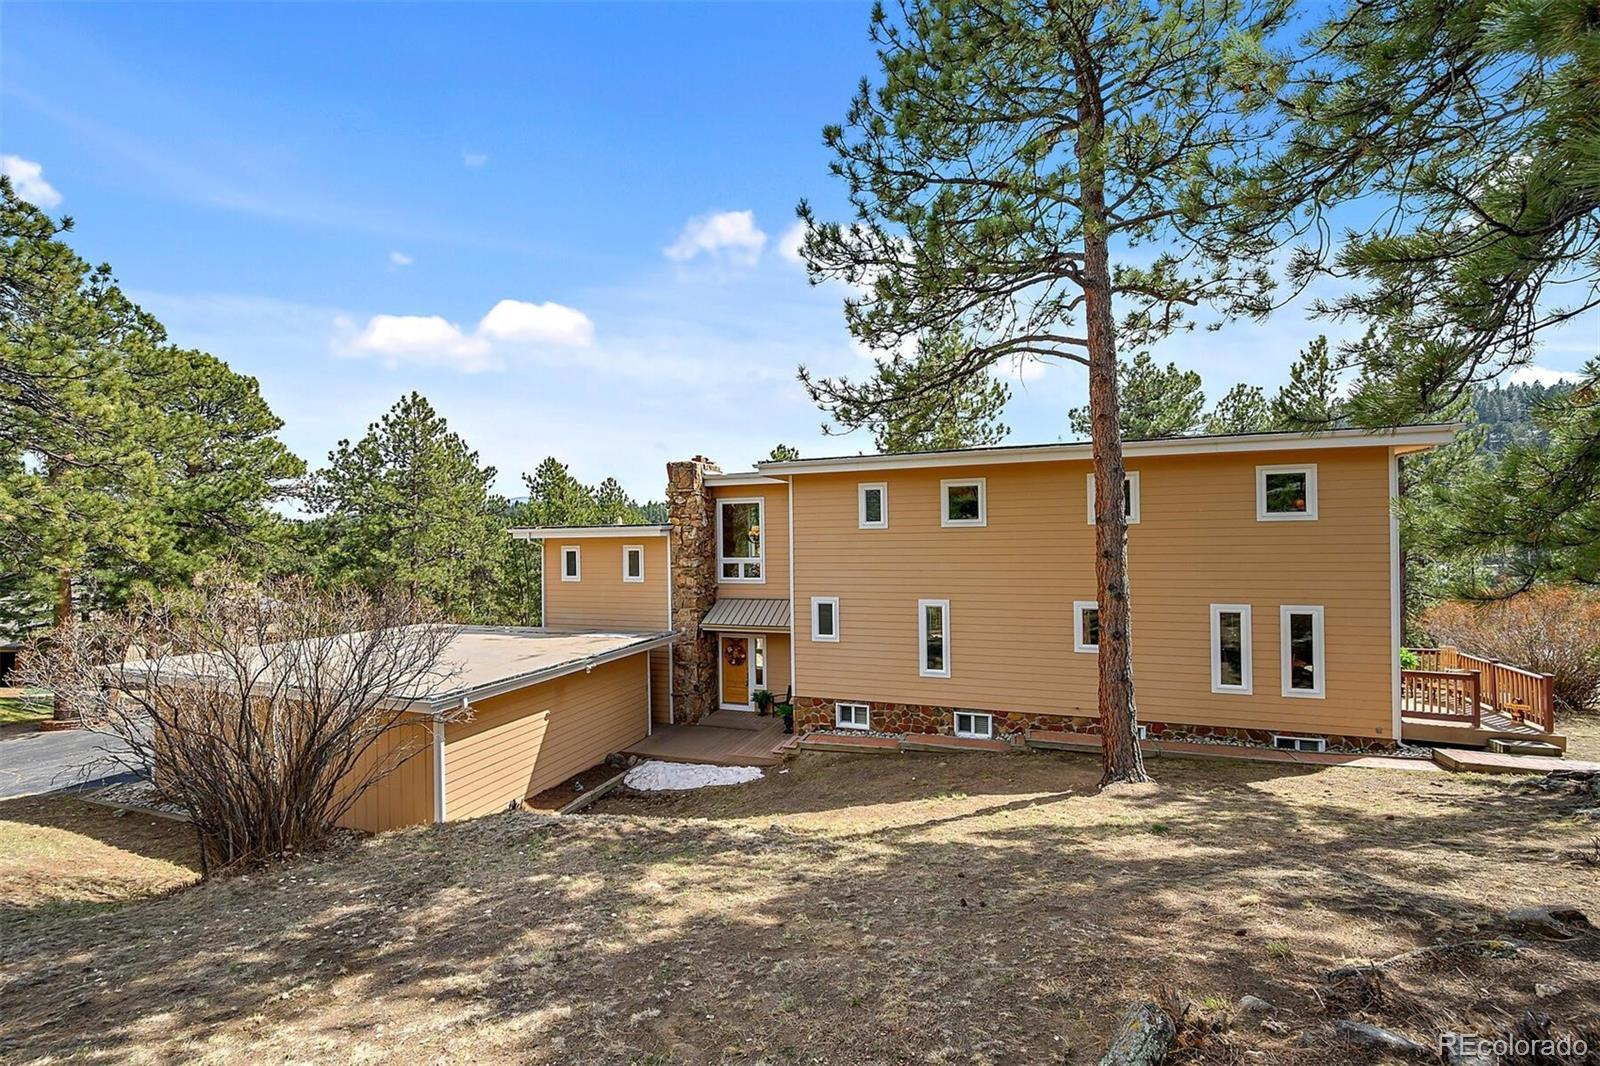 2901 Olympia Lane, Evergreen, CO 80439 - #: 8098295